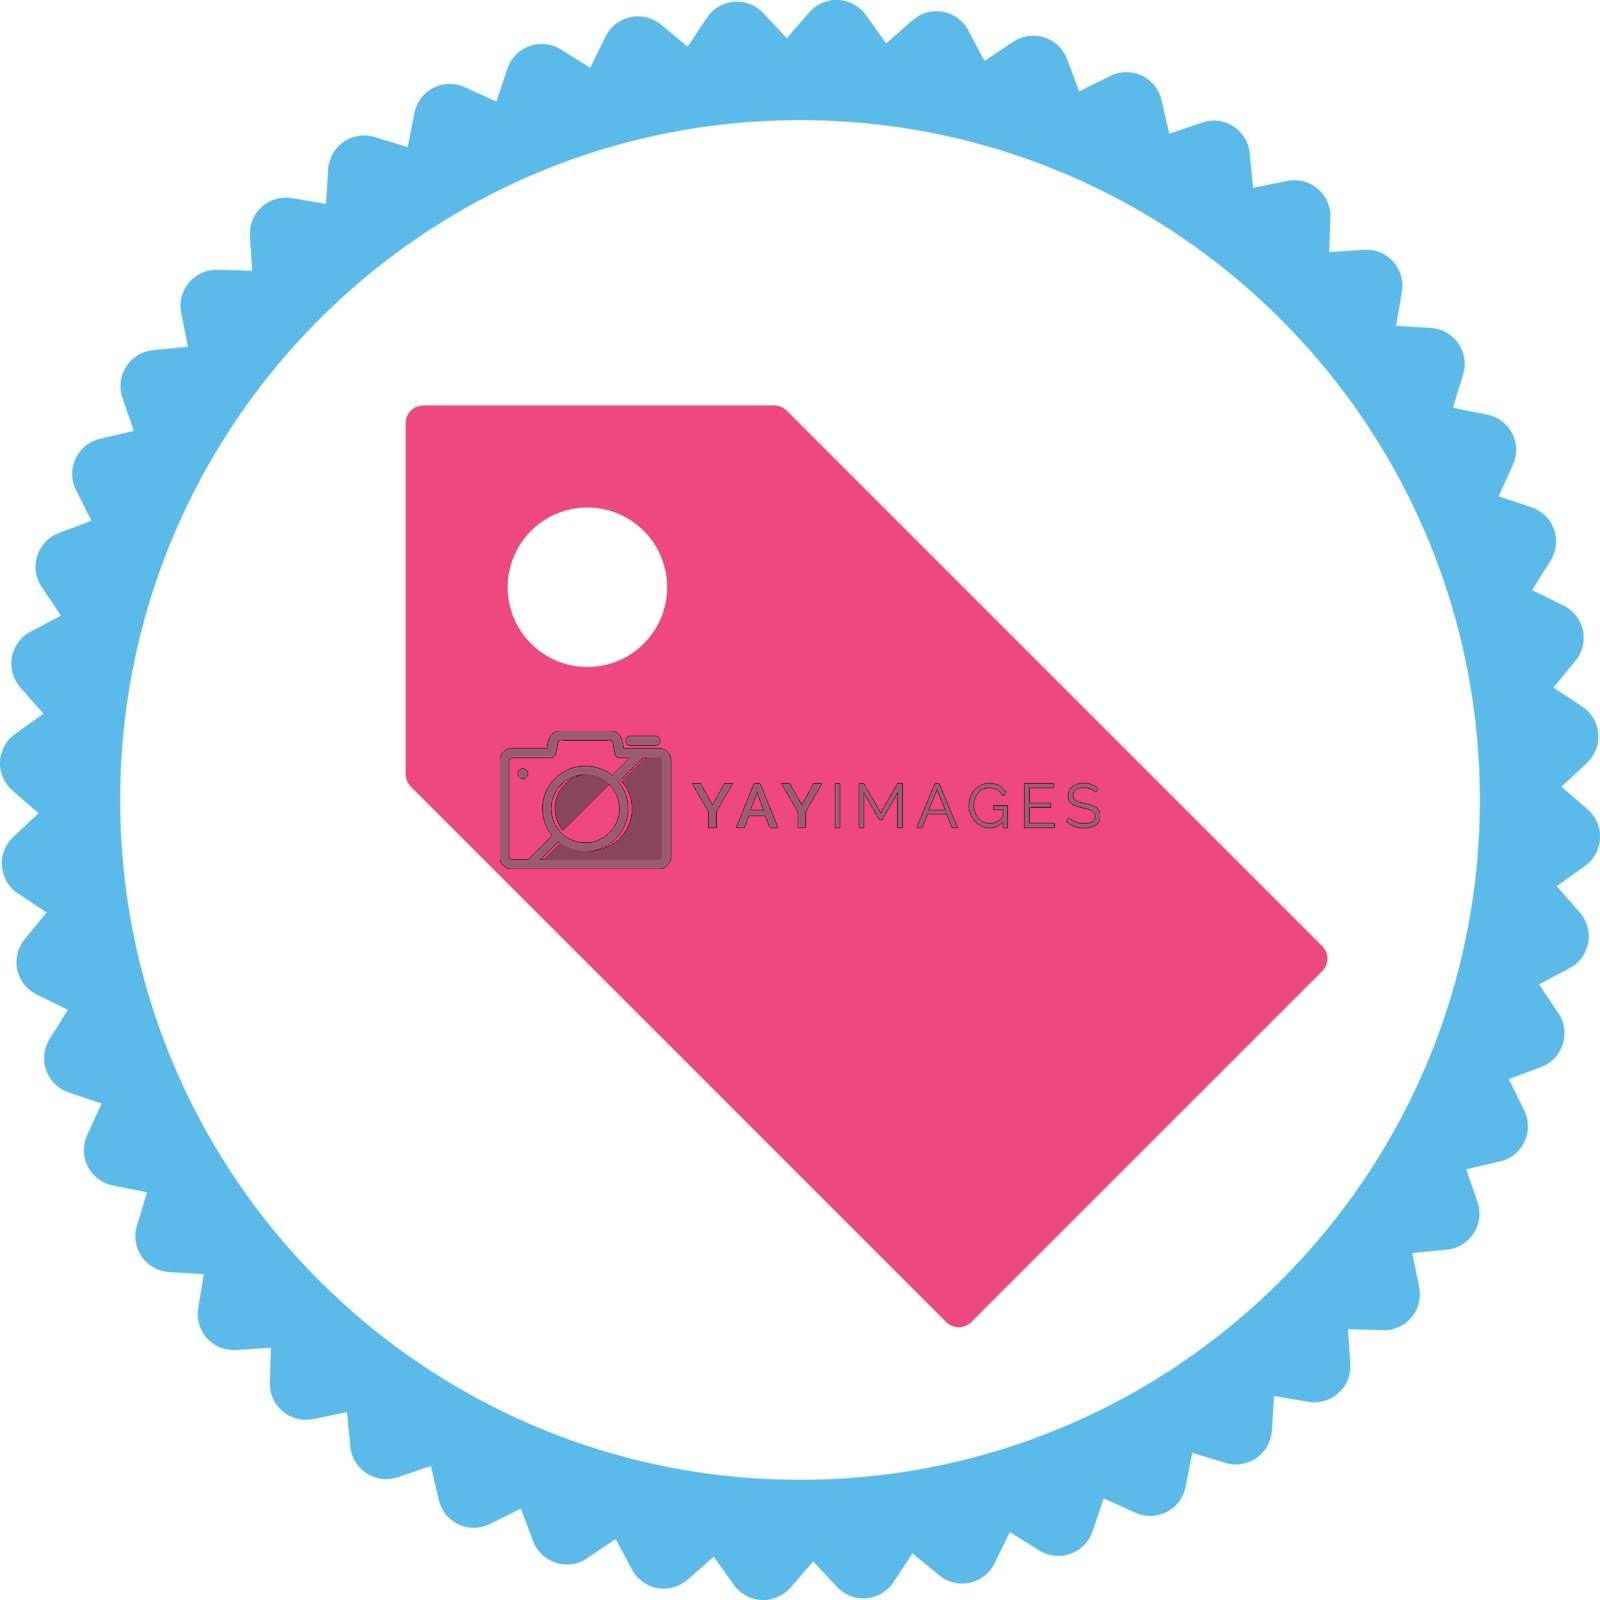 Tag flat pink and blue colors round stamp icon by Aha-Soft